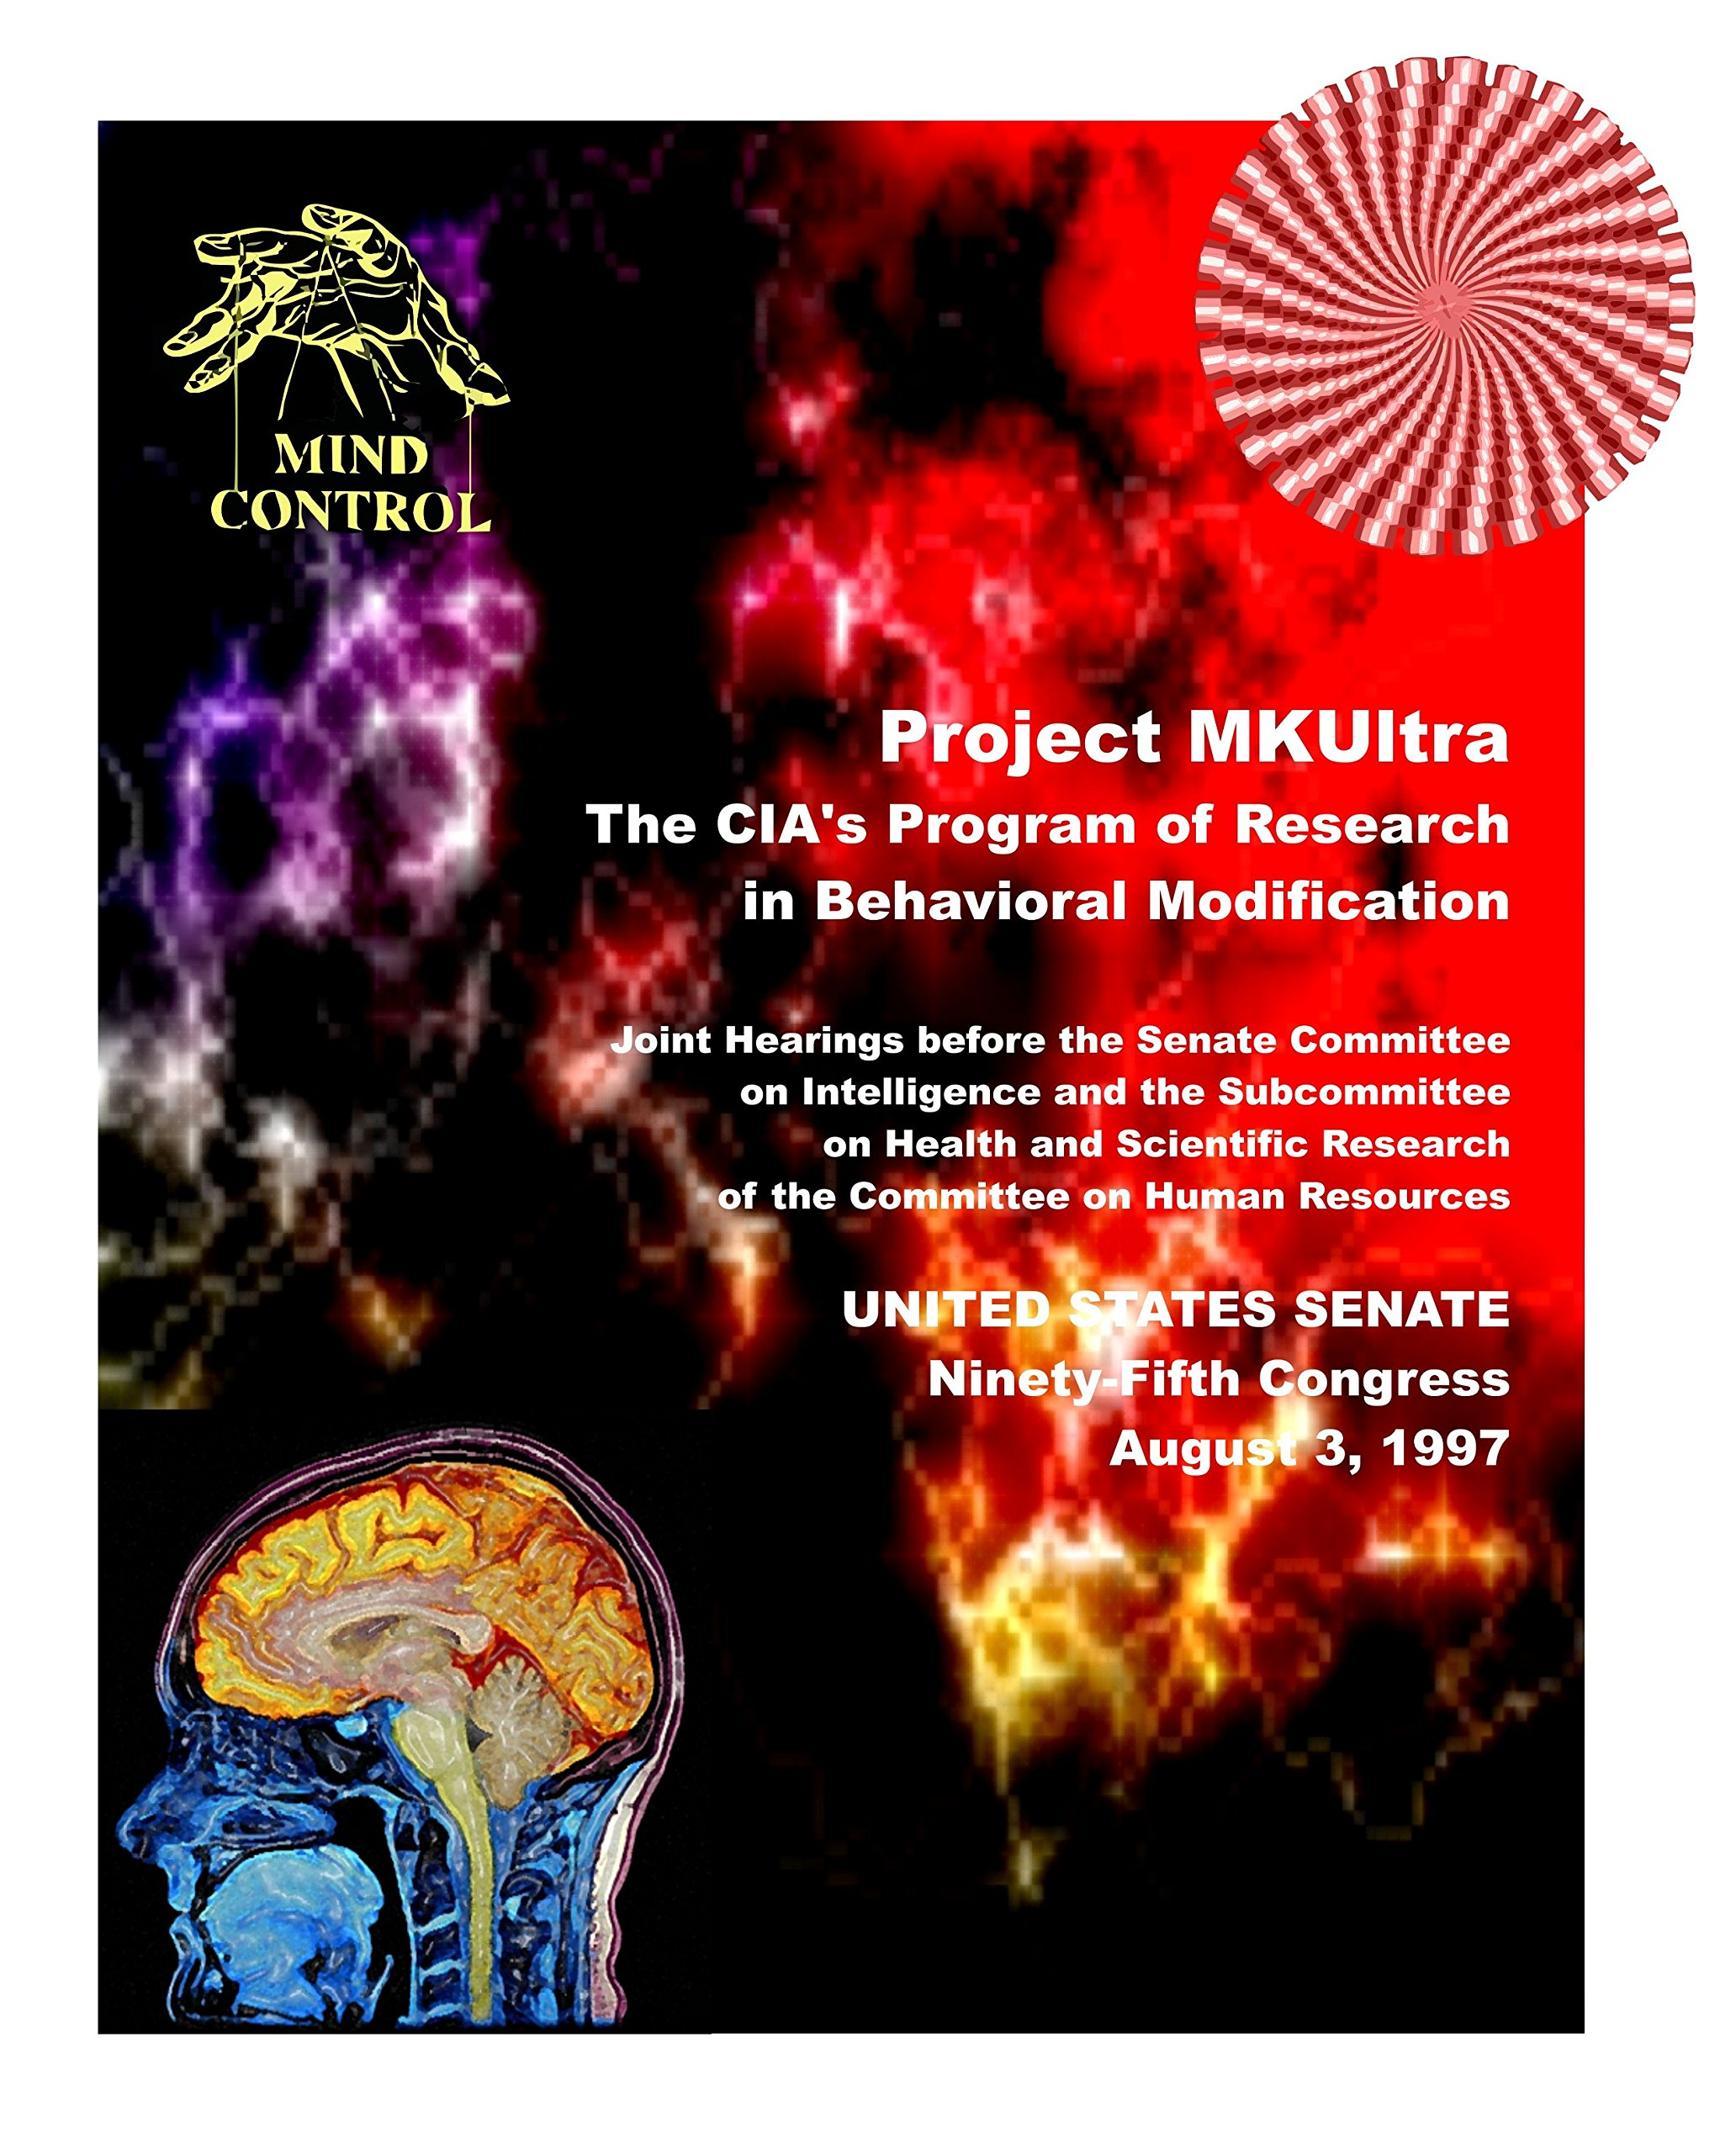 Download Project MKUltra, The CIA's Program of Research in Behavioral Modification (2012 Reprint of Original Document Facsimiles with Redactions) [Re-Imaged: Greatly De-Blemished, Aligned, Re-Margined] pdf epub